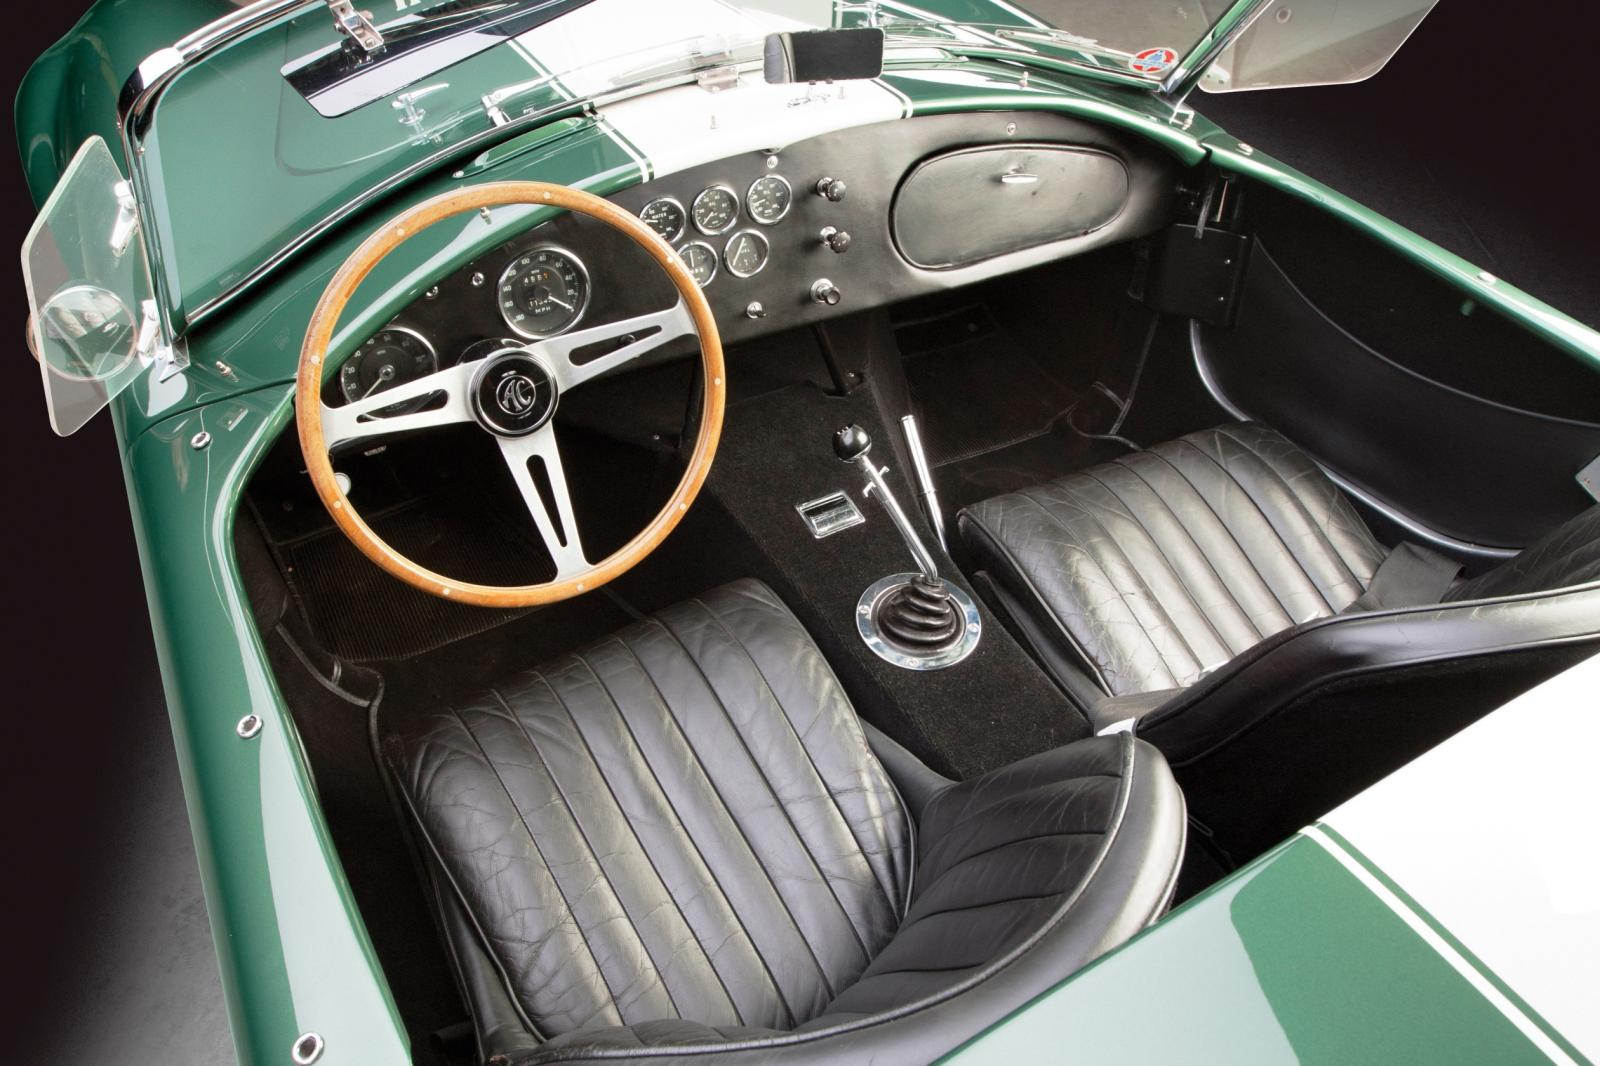 Rm Dallas Preview - ORIGINAL 1967 Shelby 427 Cobra Estimated at $1MM+ 4